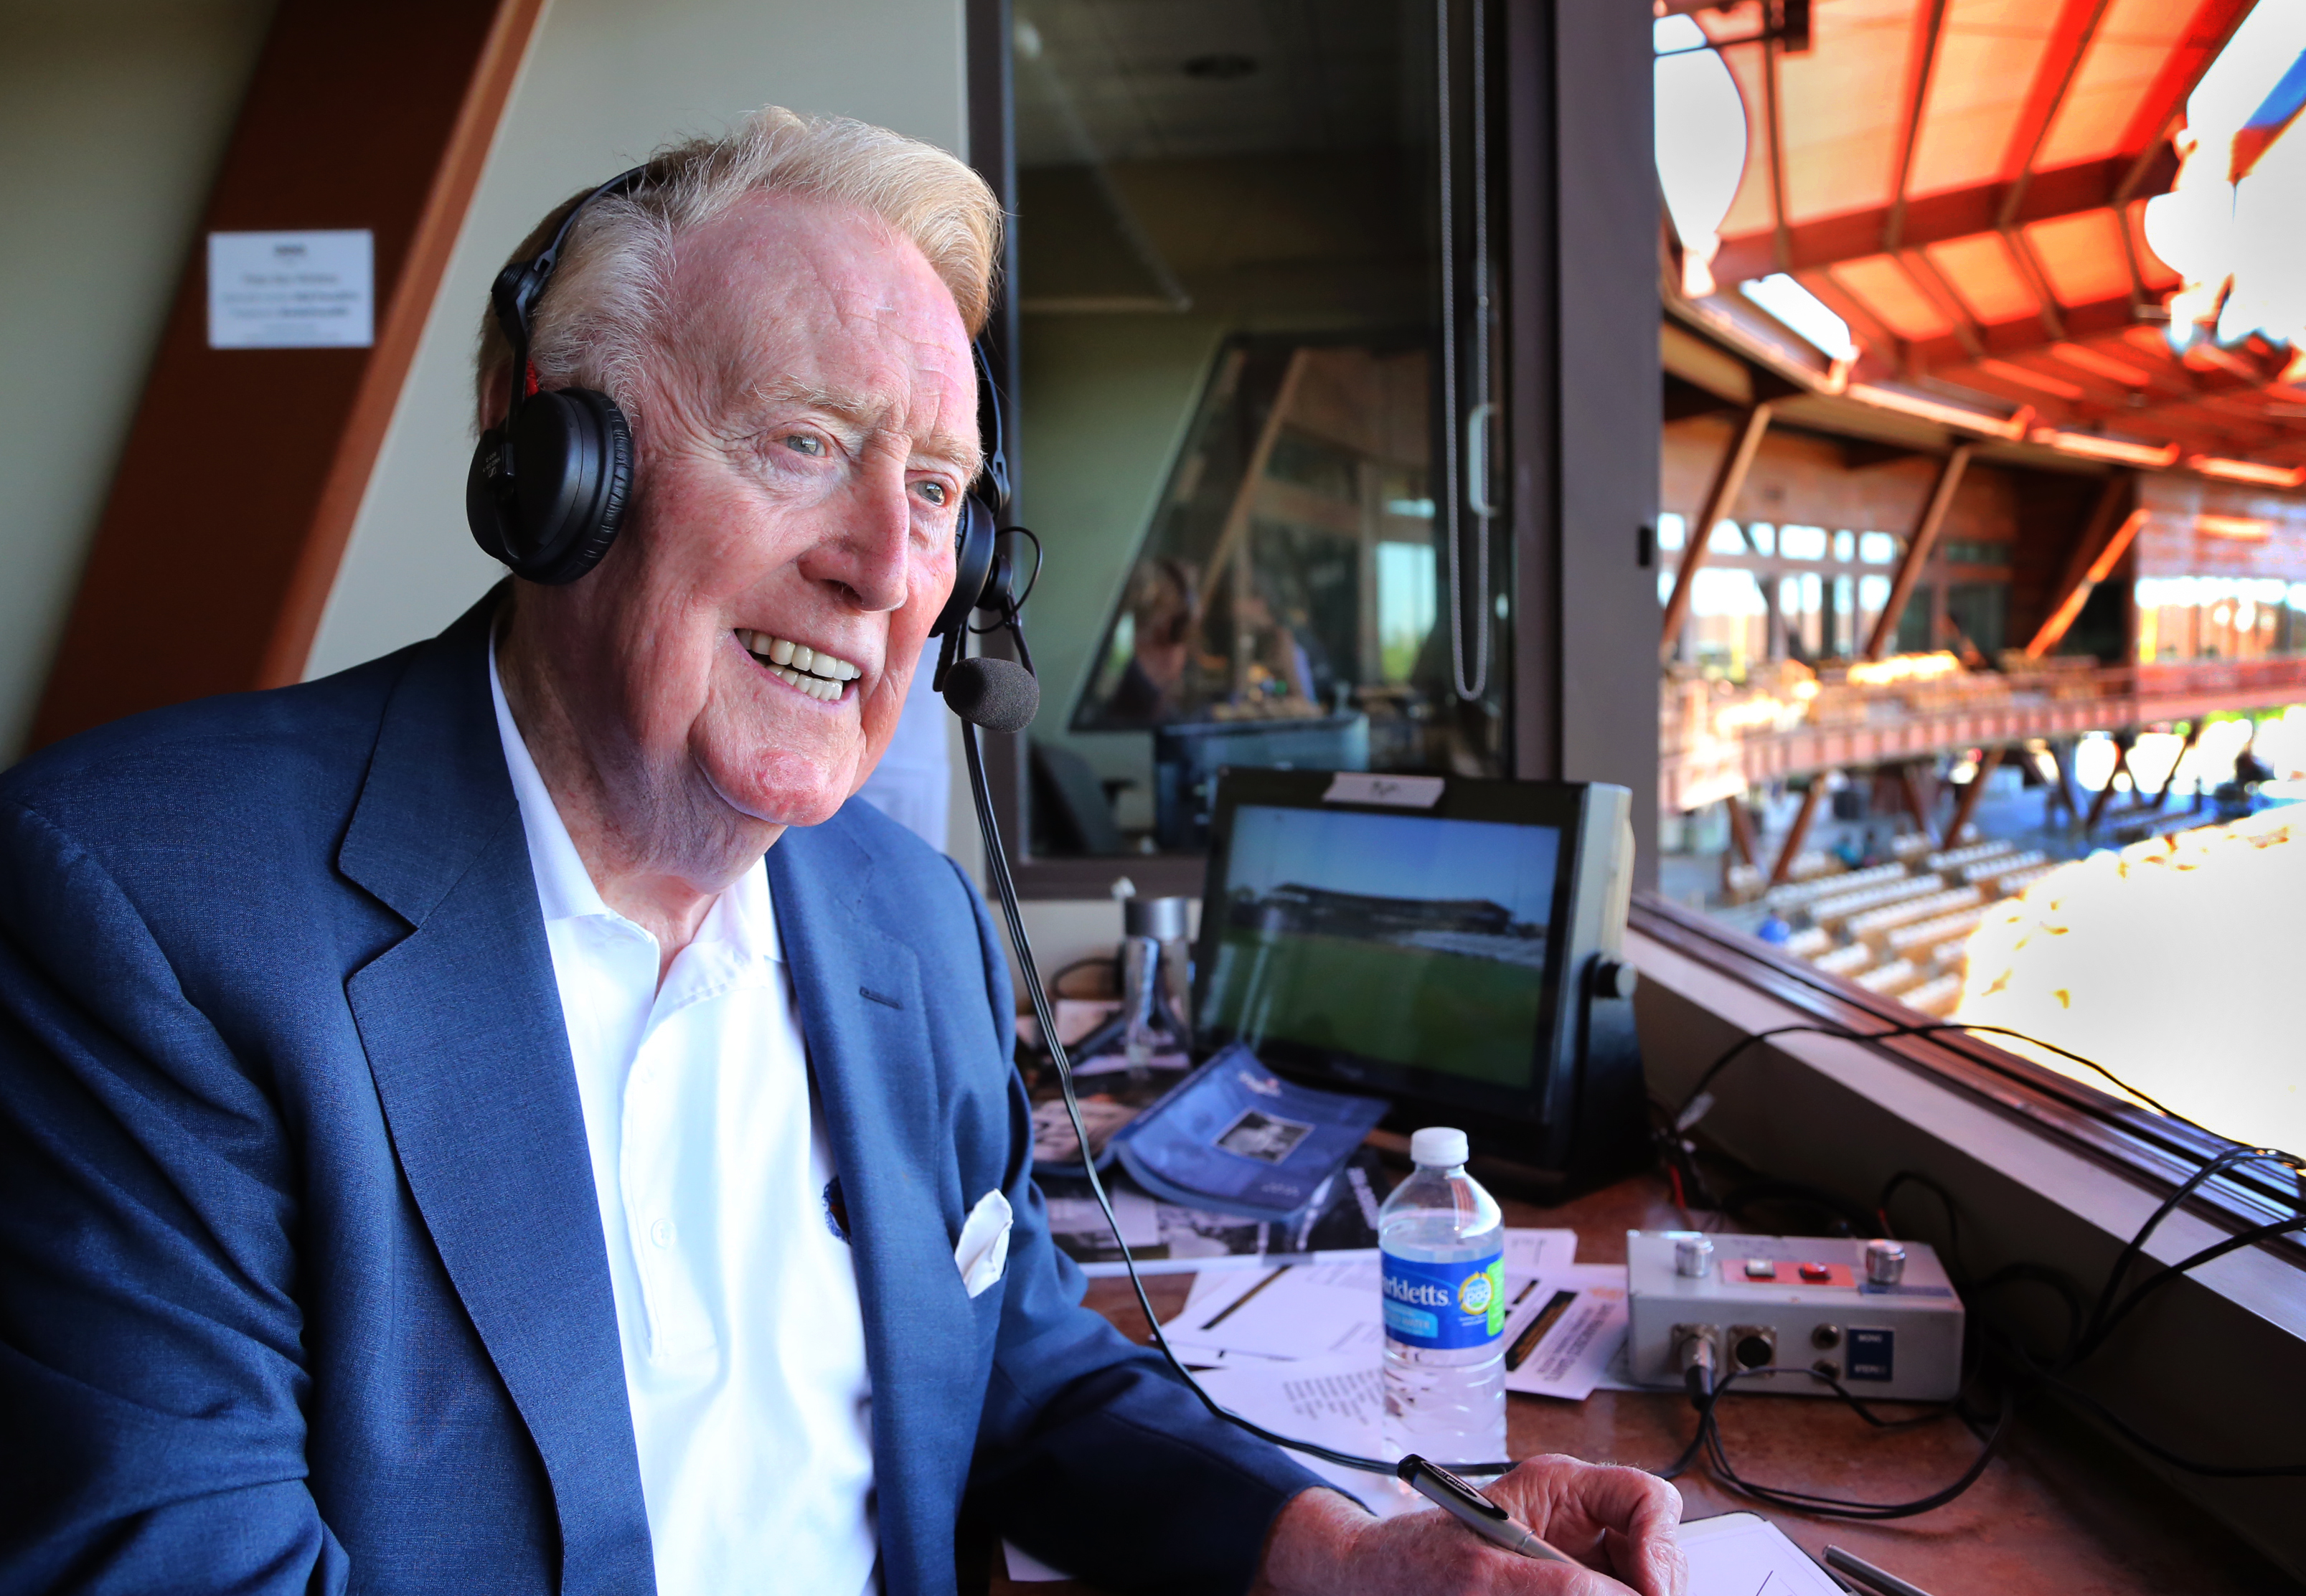 Legendary Los Angeles Dodgers broadcaster Vin Scully sits in the booth at Camelback Ranch Glendale, Ariz., ballpark Friday, March 25, 2016, the day of the last broadcast he will do from the park. (Tom Tingle/The Arizona Republic via AP)